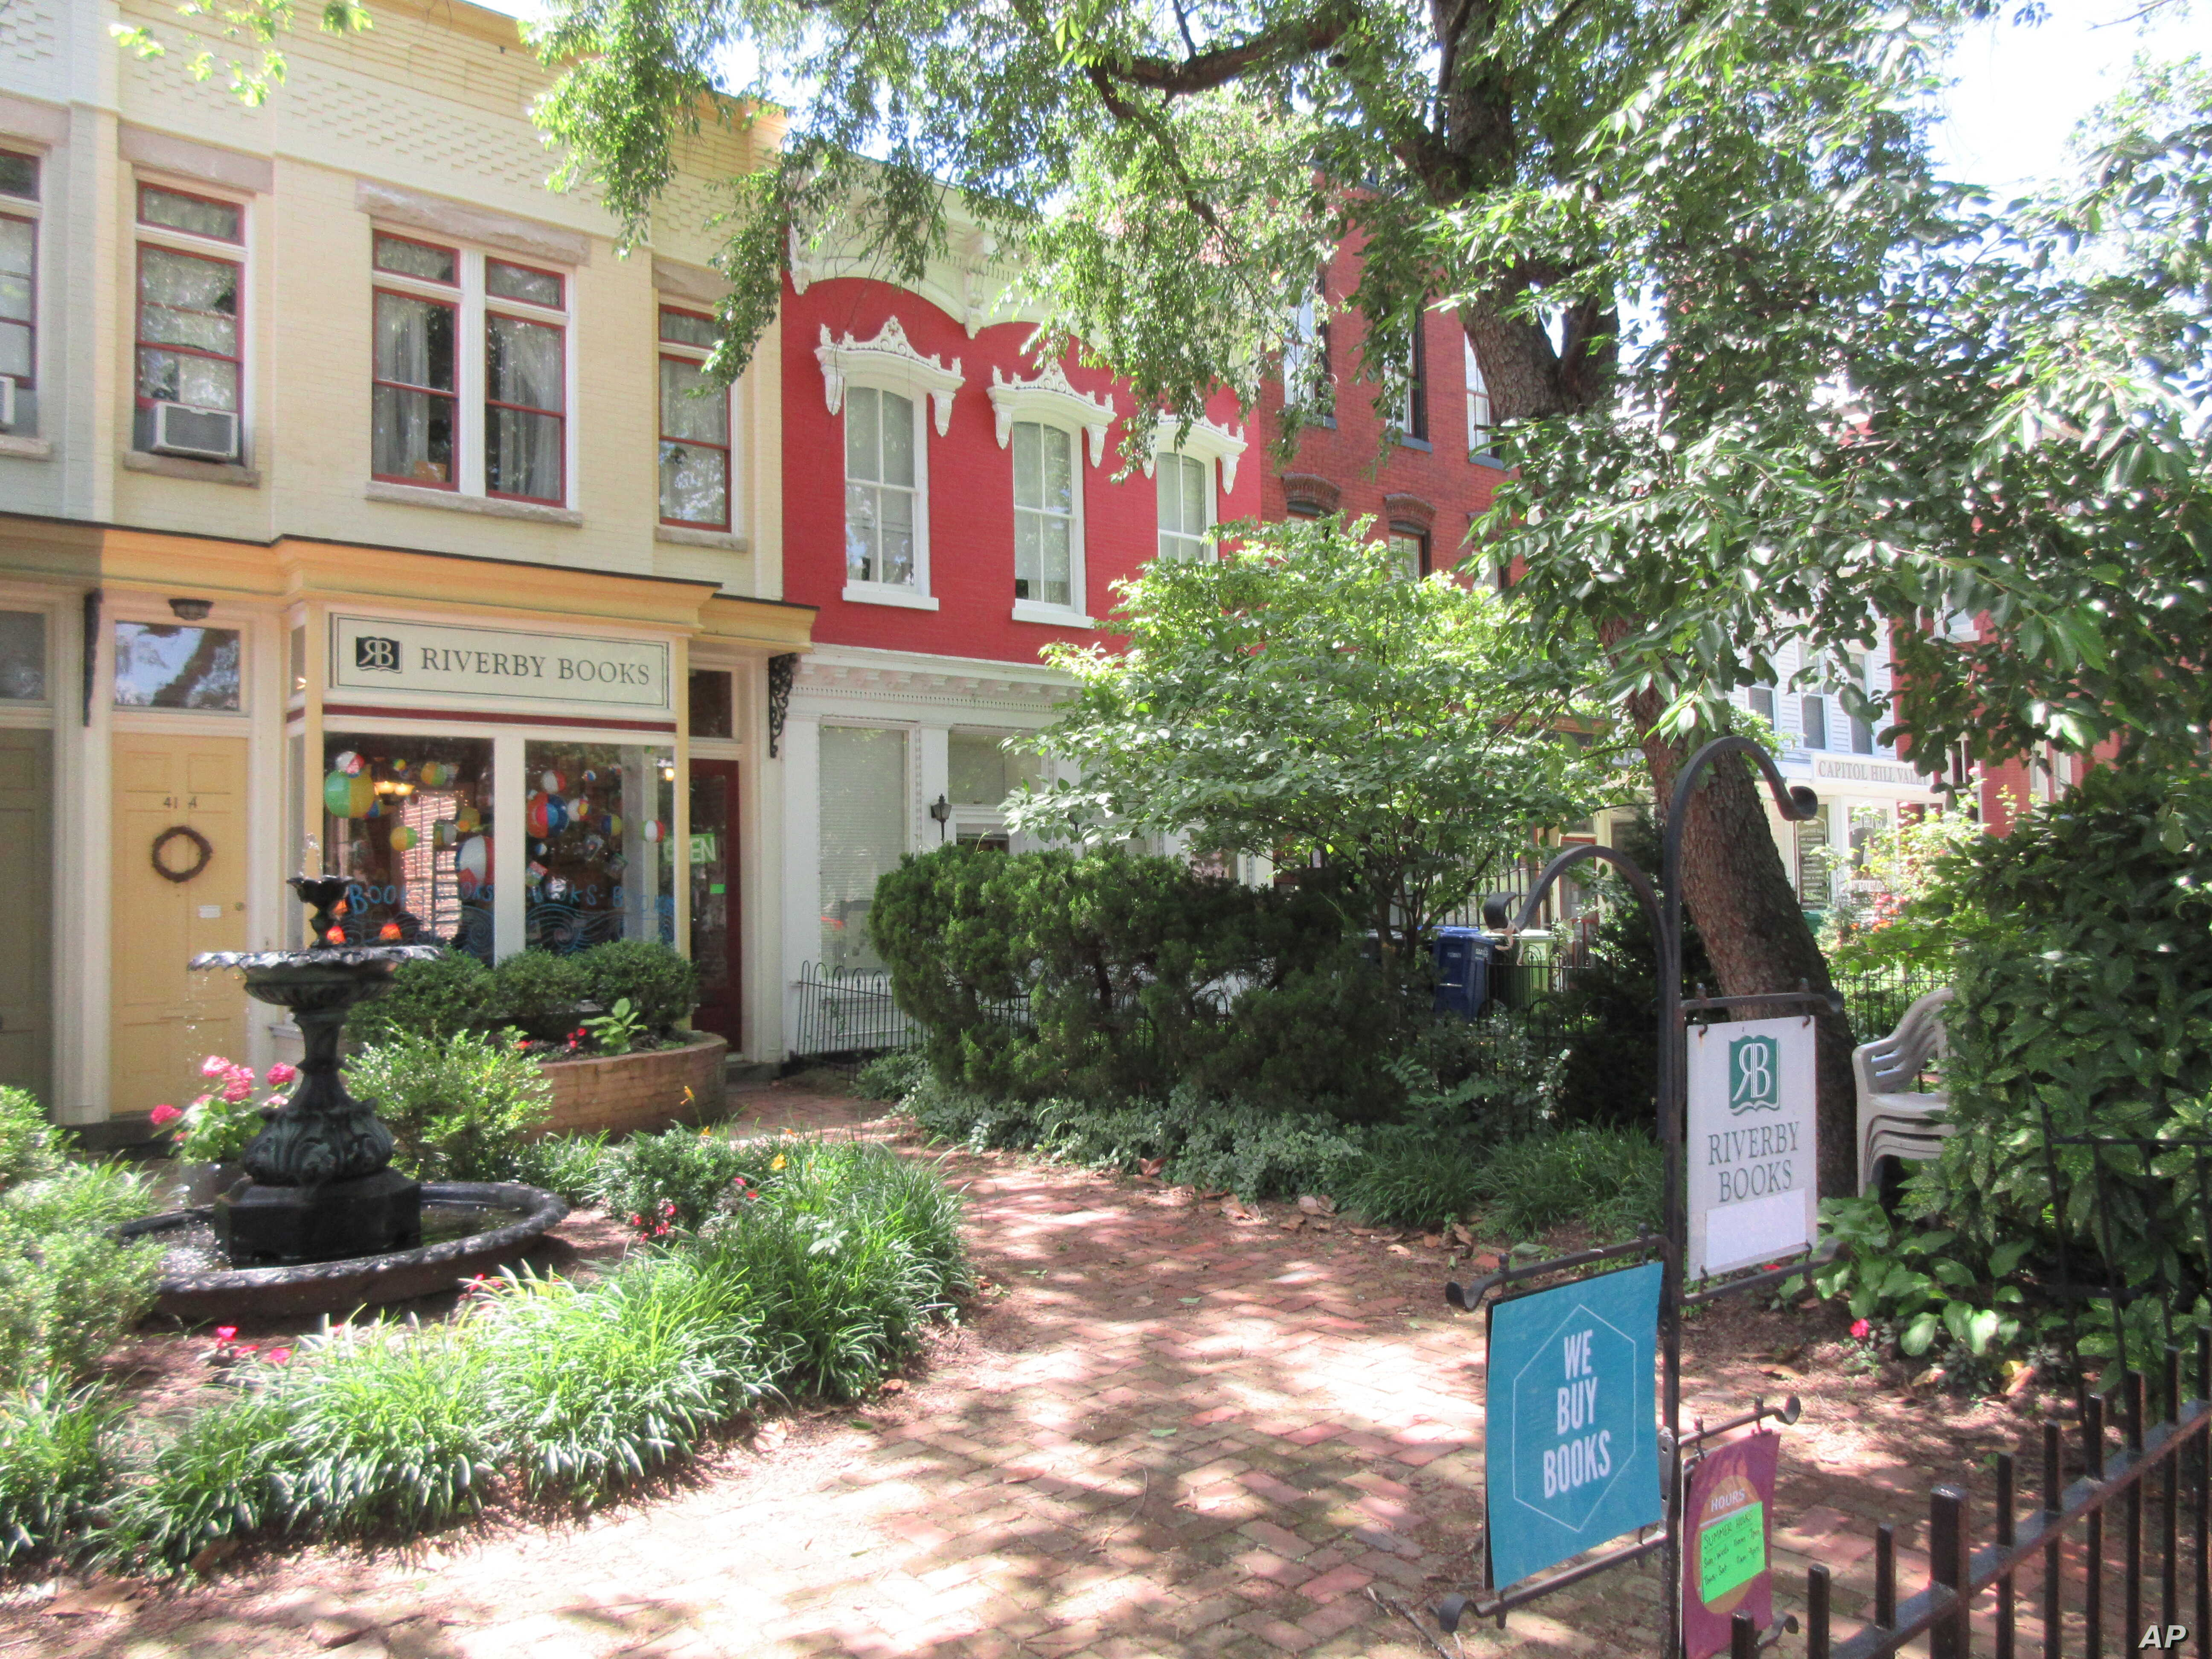 FILE - This June 8, 2016 photo shows Riverby Books, a small independent bookstore located in the Capitol Hill neighborhood of Washington D.C.